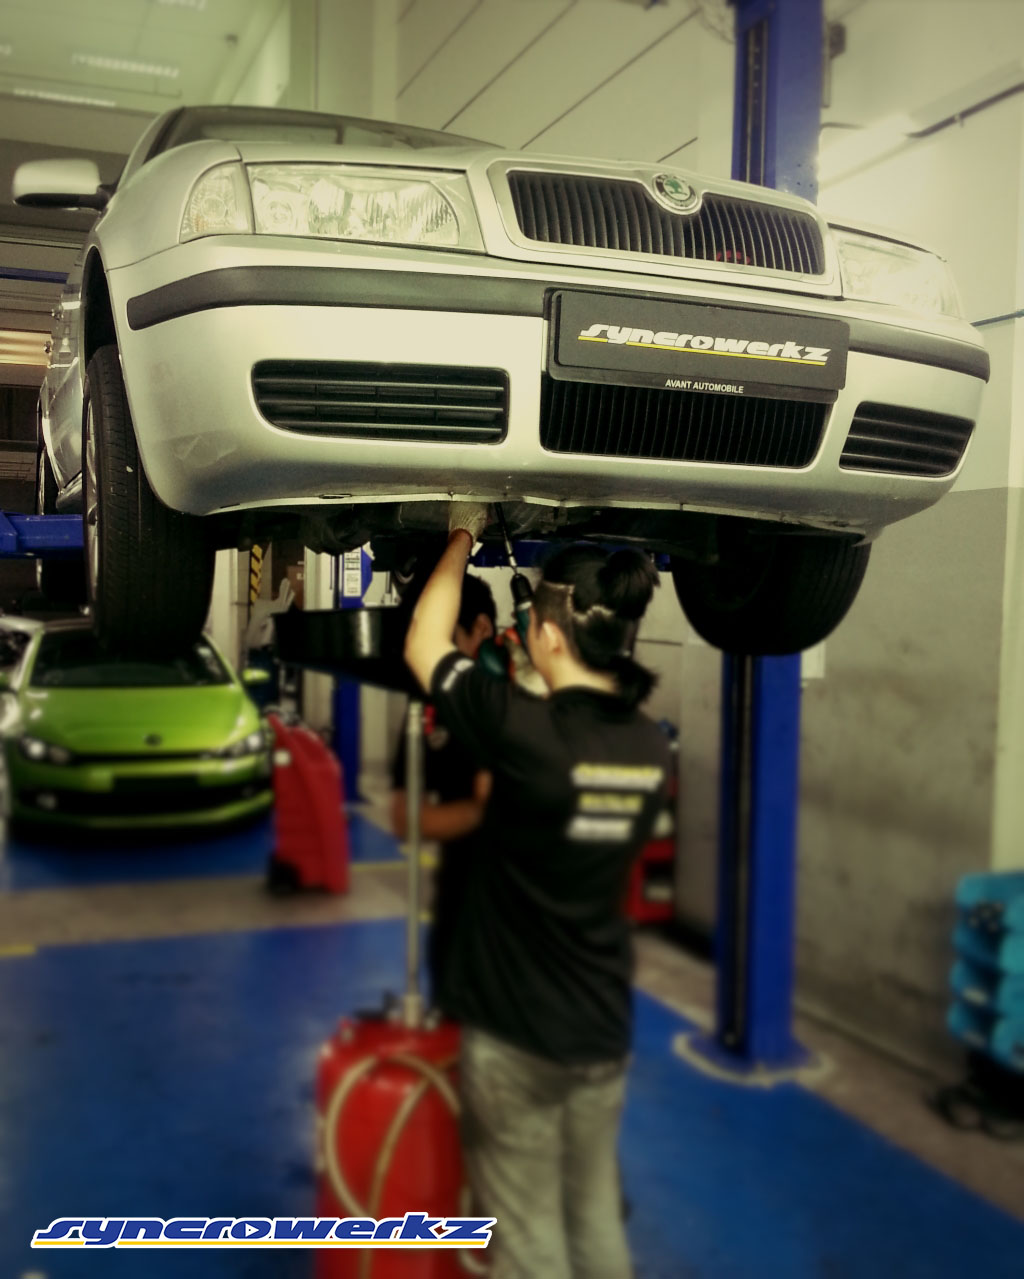 Skoda Octavia choosing our Standard Servicing Package to provide the protection his Skoda requires